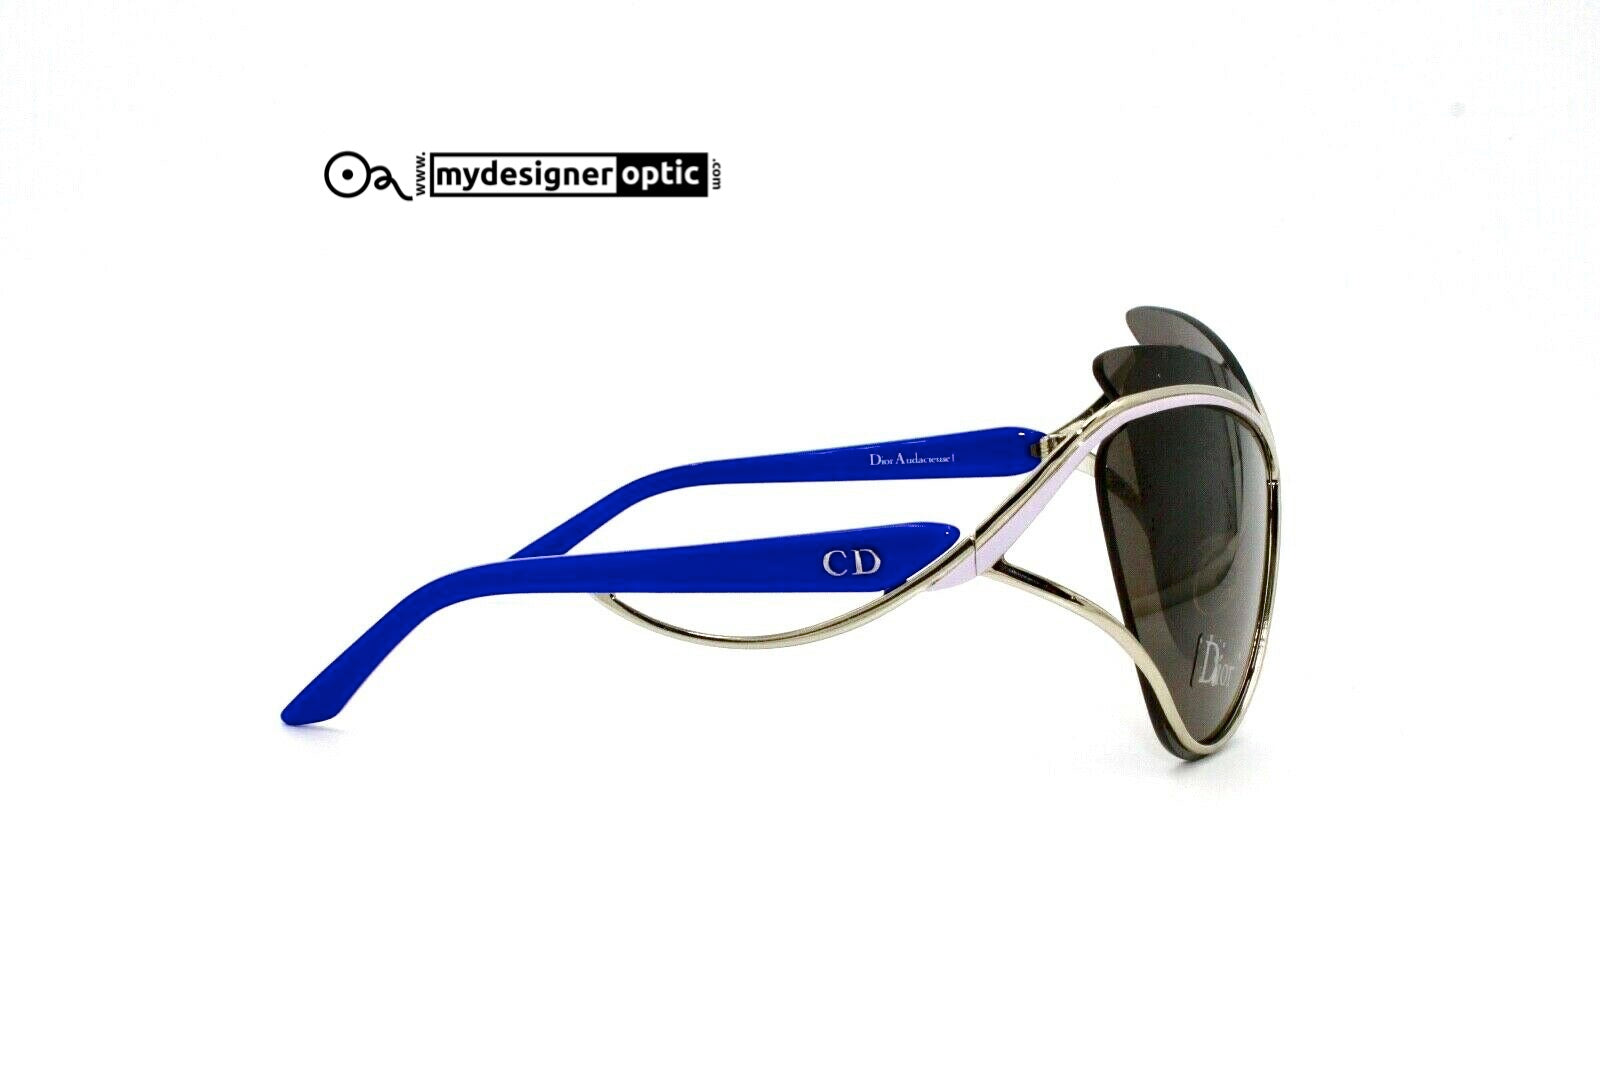 Dior Sunglasses Dior Audacieuse1 QCUO6BP4XH 4CLY1 72-04-115 Made in Italy - Mydesigneroptic